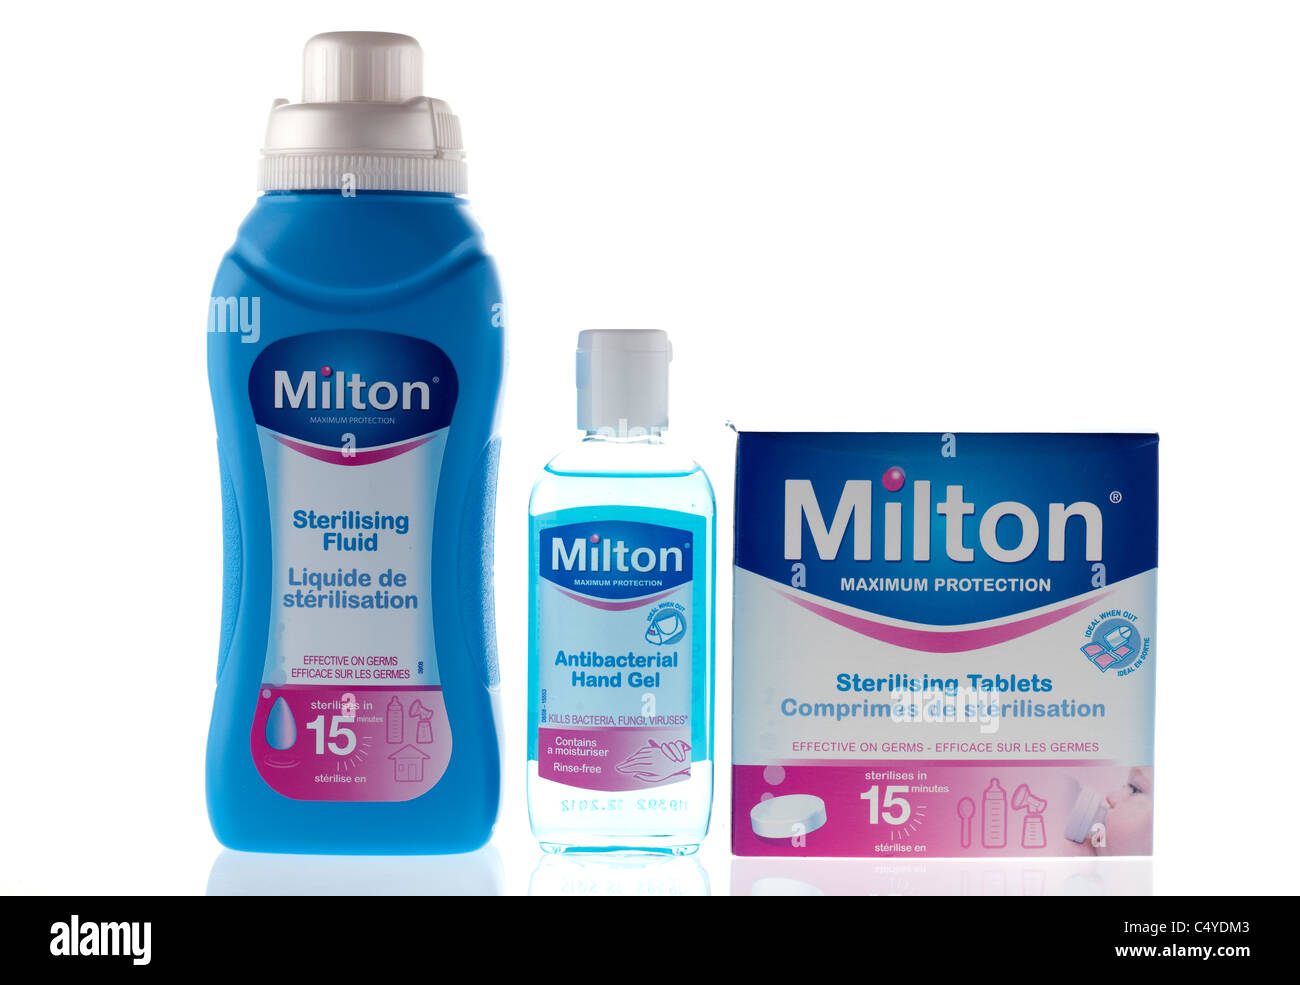 Three Milton products Sterilising fluid and antibacterial rinse free hand gel and sterilising tablets - Stock Image